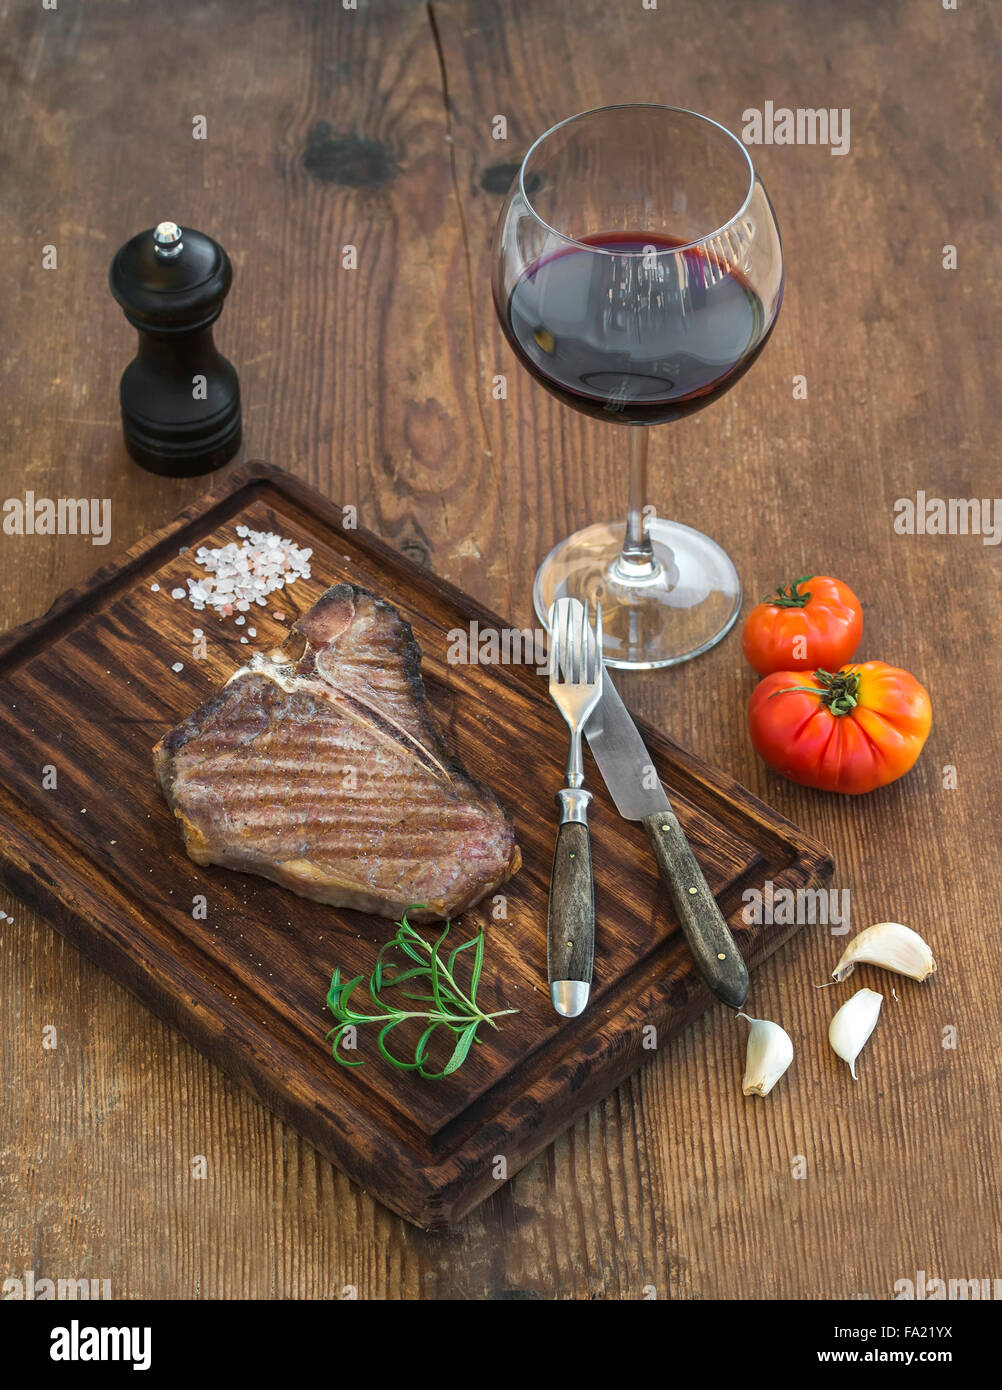 Cooked meat t-bone steak on serving board with garlic cloves, tomatoes, rosemary, spices and glass of red wine over Stock Photo